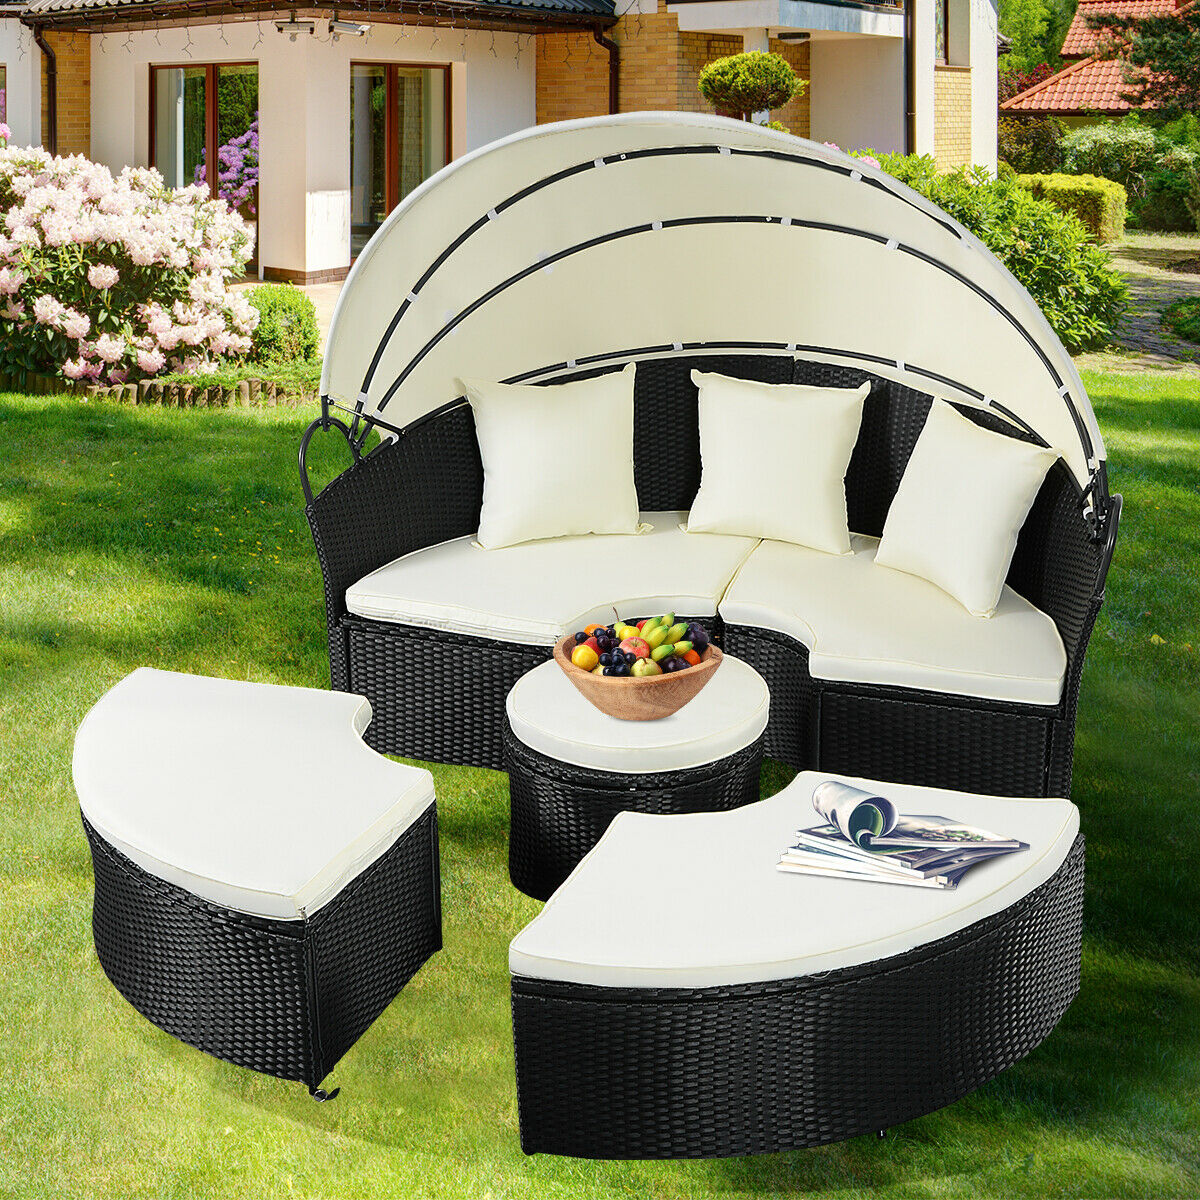 Gymax Rattan Wicker Round Retractable Canopy Daybed Sofa Furniture Set Outdoor Patio - image 8 of 9